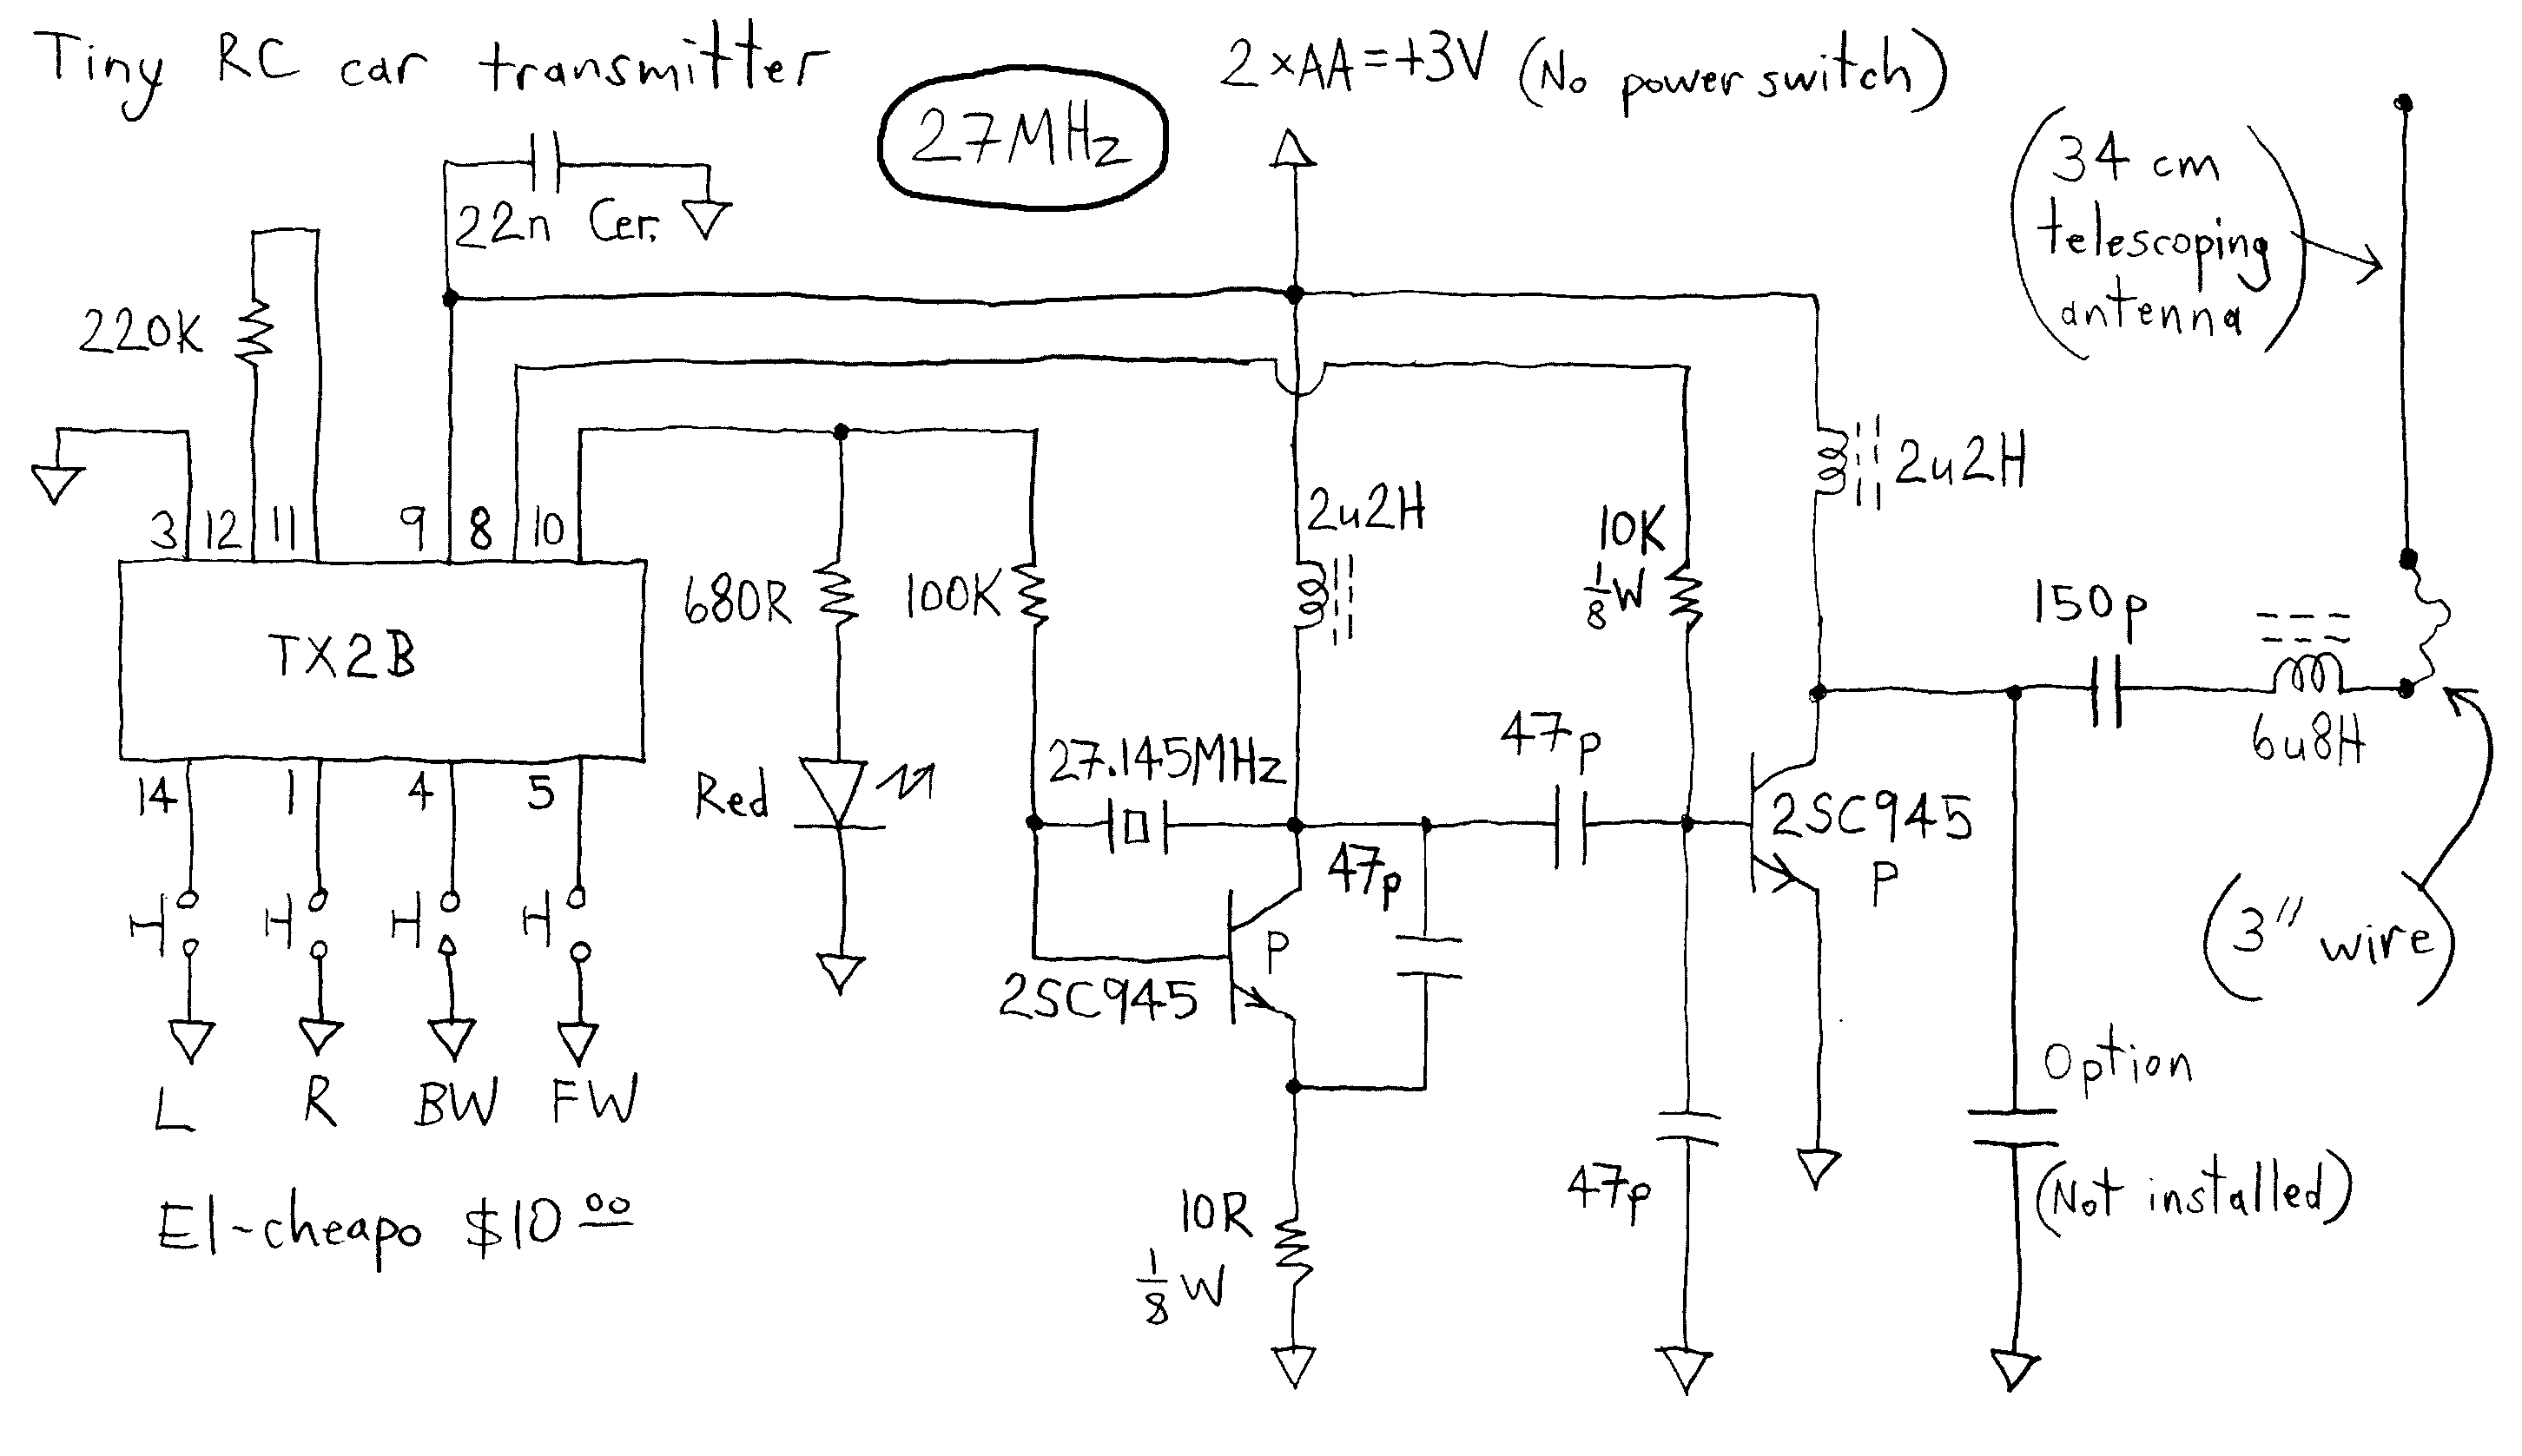 Tiny RC Cars - Transmitter and Charger - schematic